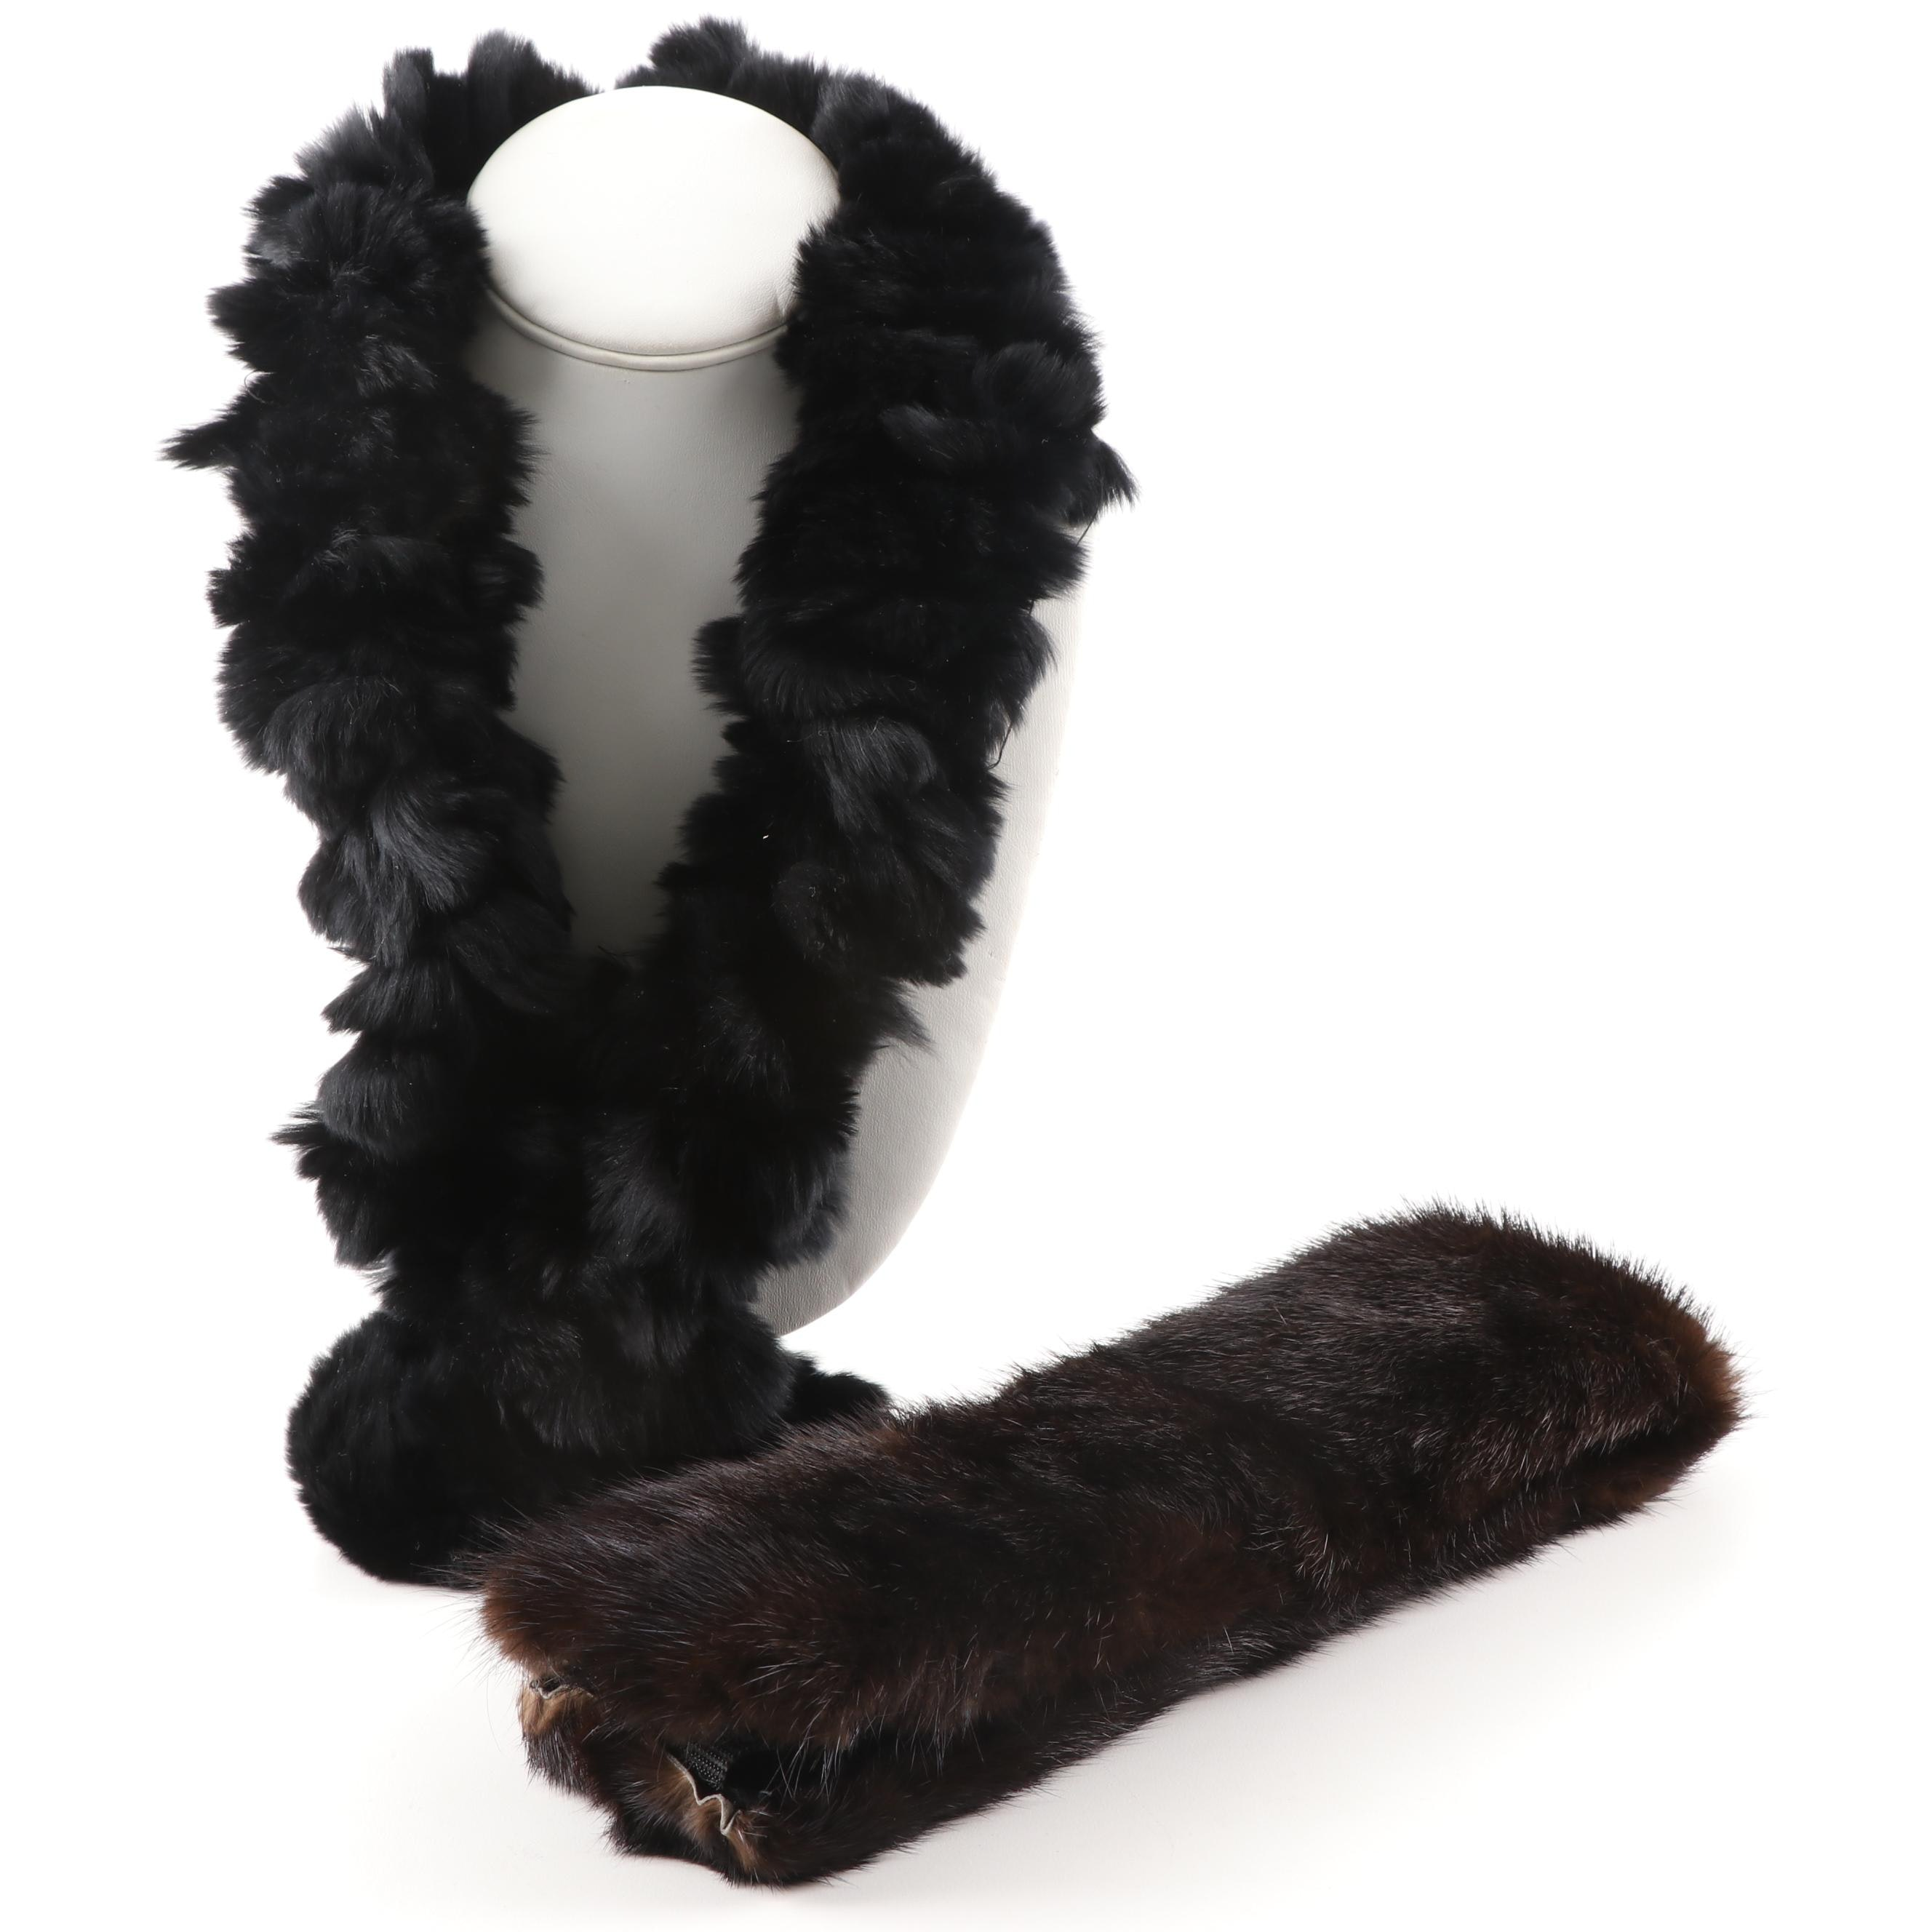 Mink Fur and Rabbit Fur Collars